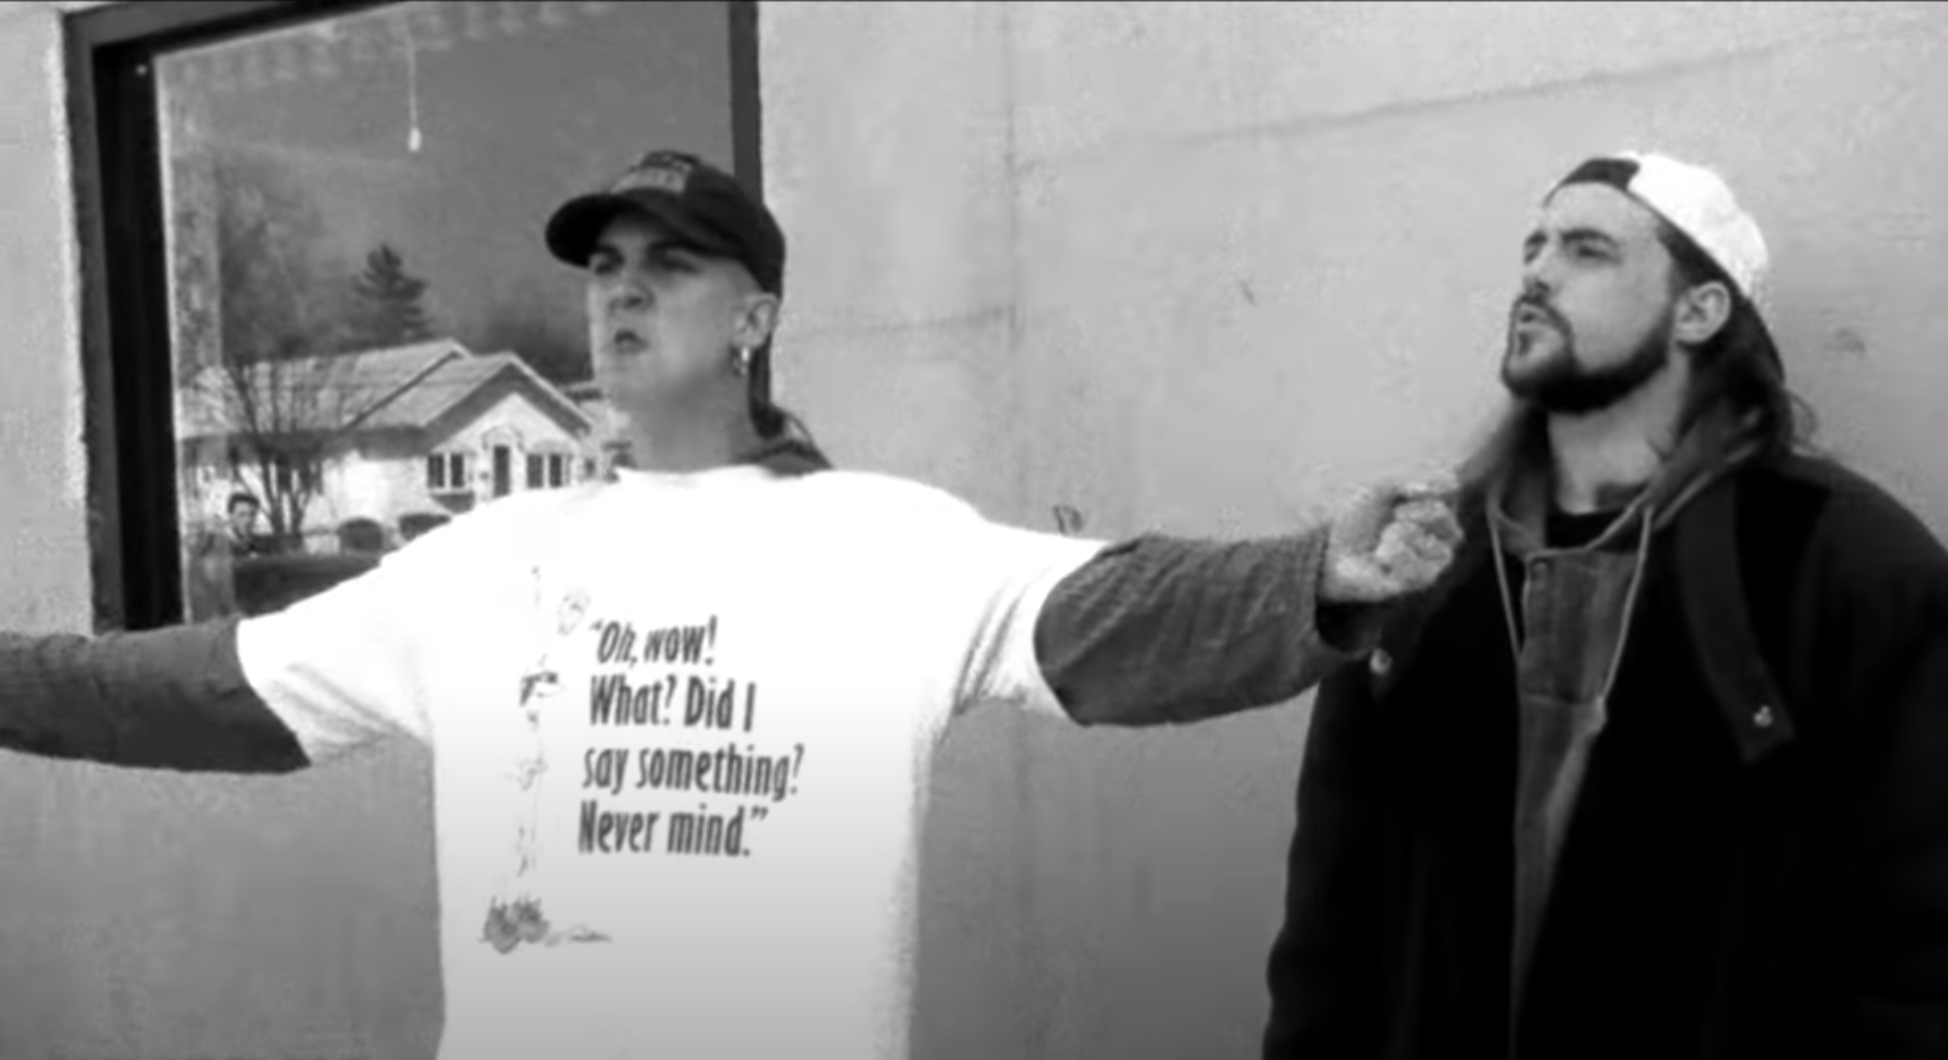 Mewes as Jay pontificates with hands outstretched in front of the mini mart